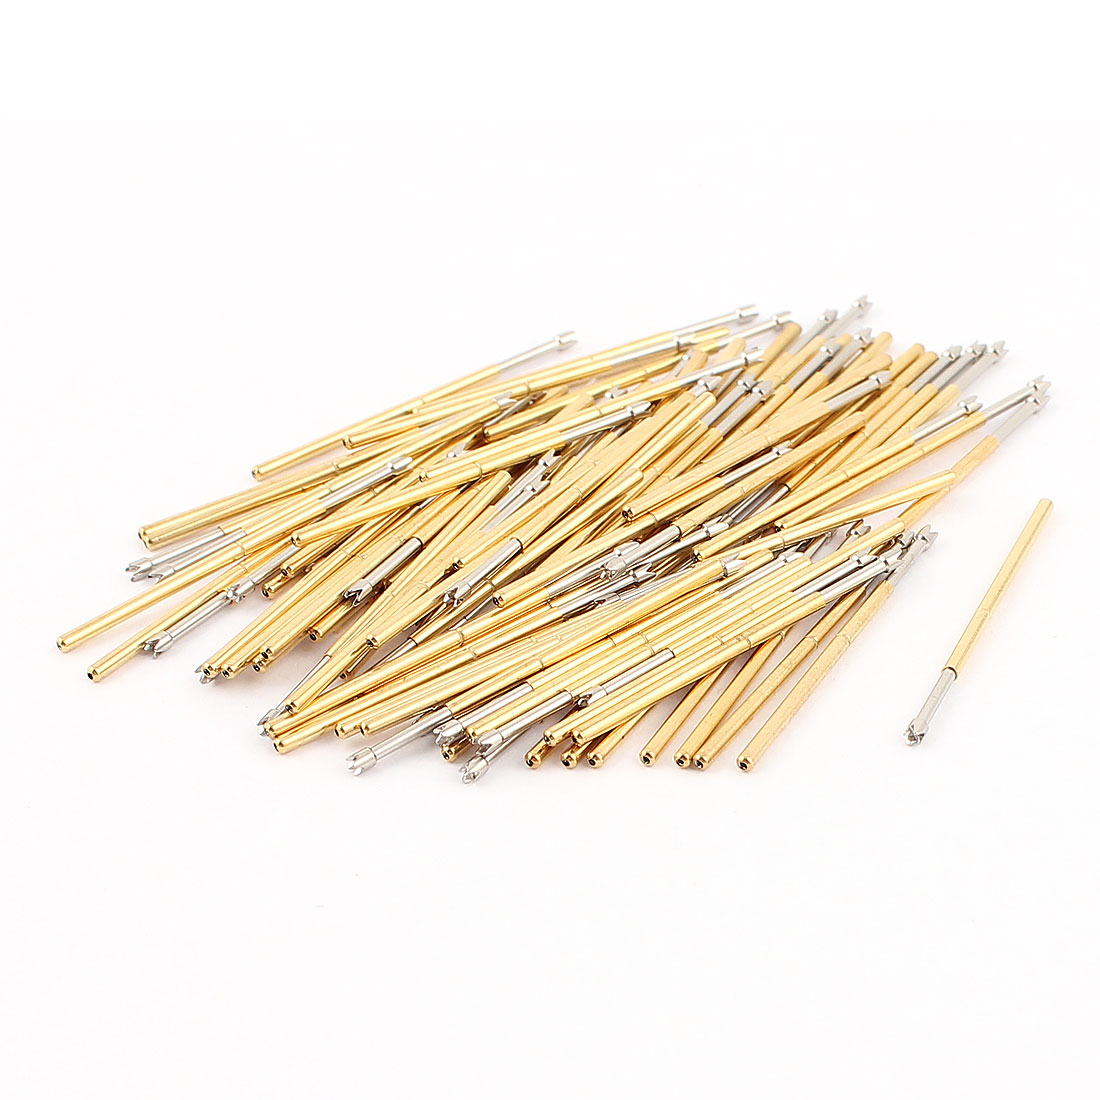 P100-Q2 4-Pointed Crown Tip 33mm Length Metal Spring Test Probe Pin 100pcs